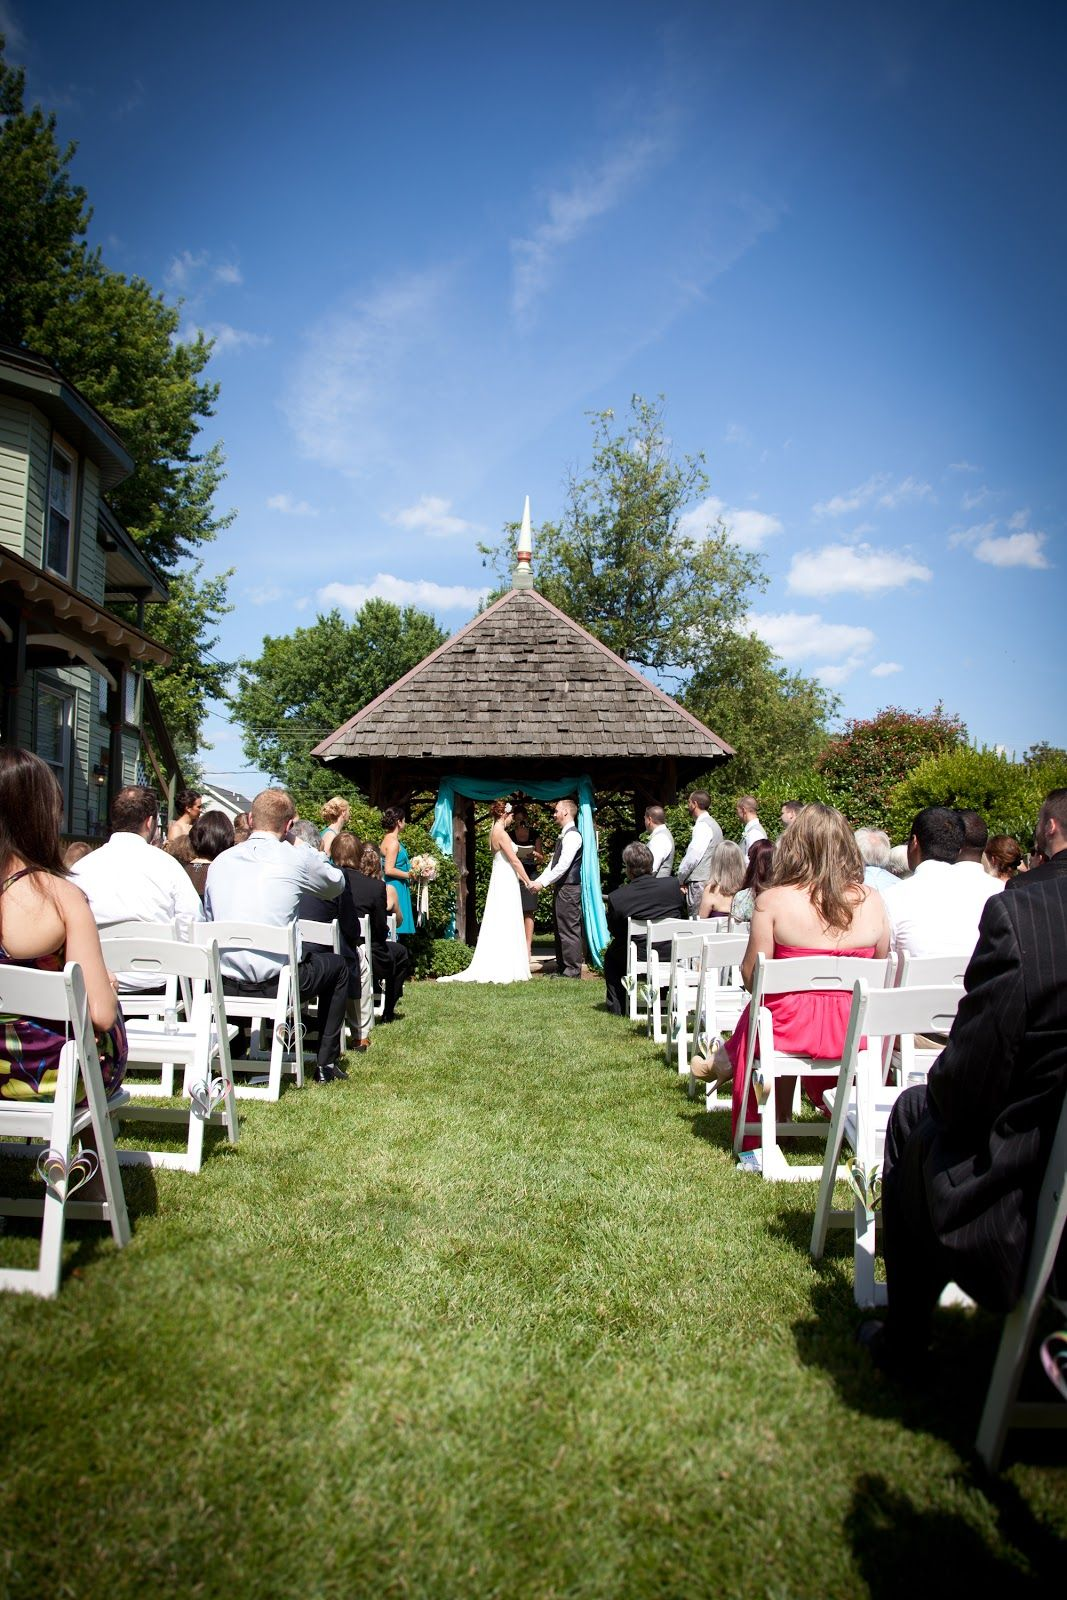 modern secular wedding ceremony script%0A Nontraditional  non religious wedding ceremony  used for a samesex wedding  but would work for anyone  Vows  readings  etc    ideas   Pinterest    Religious